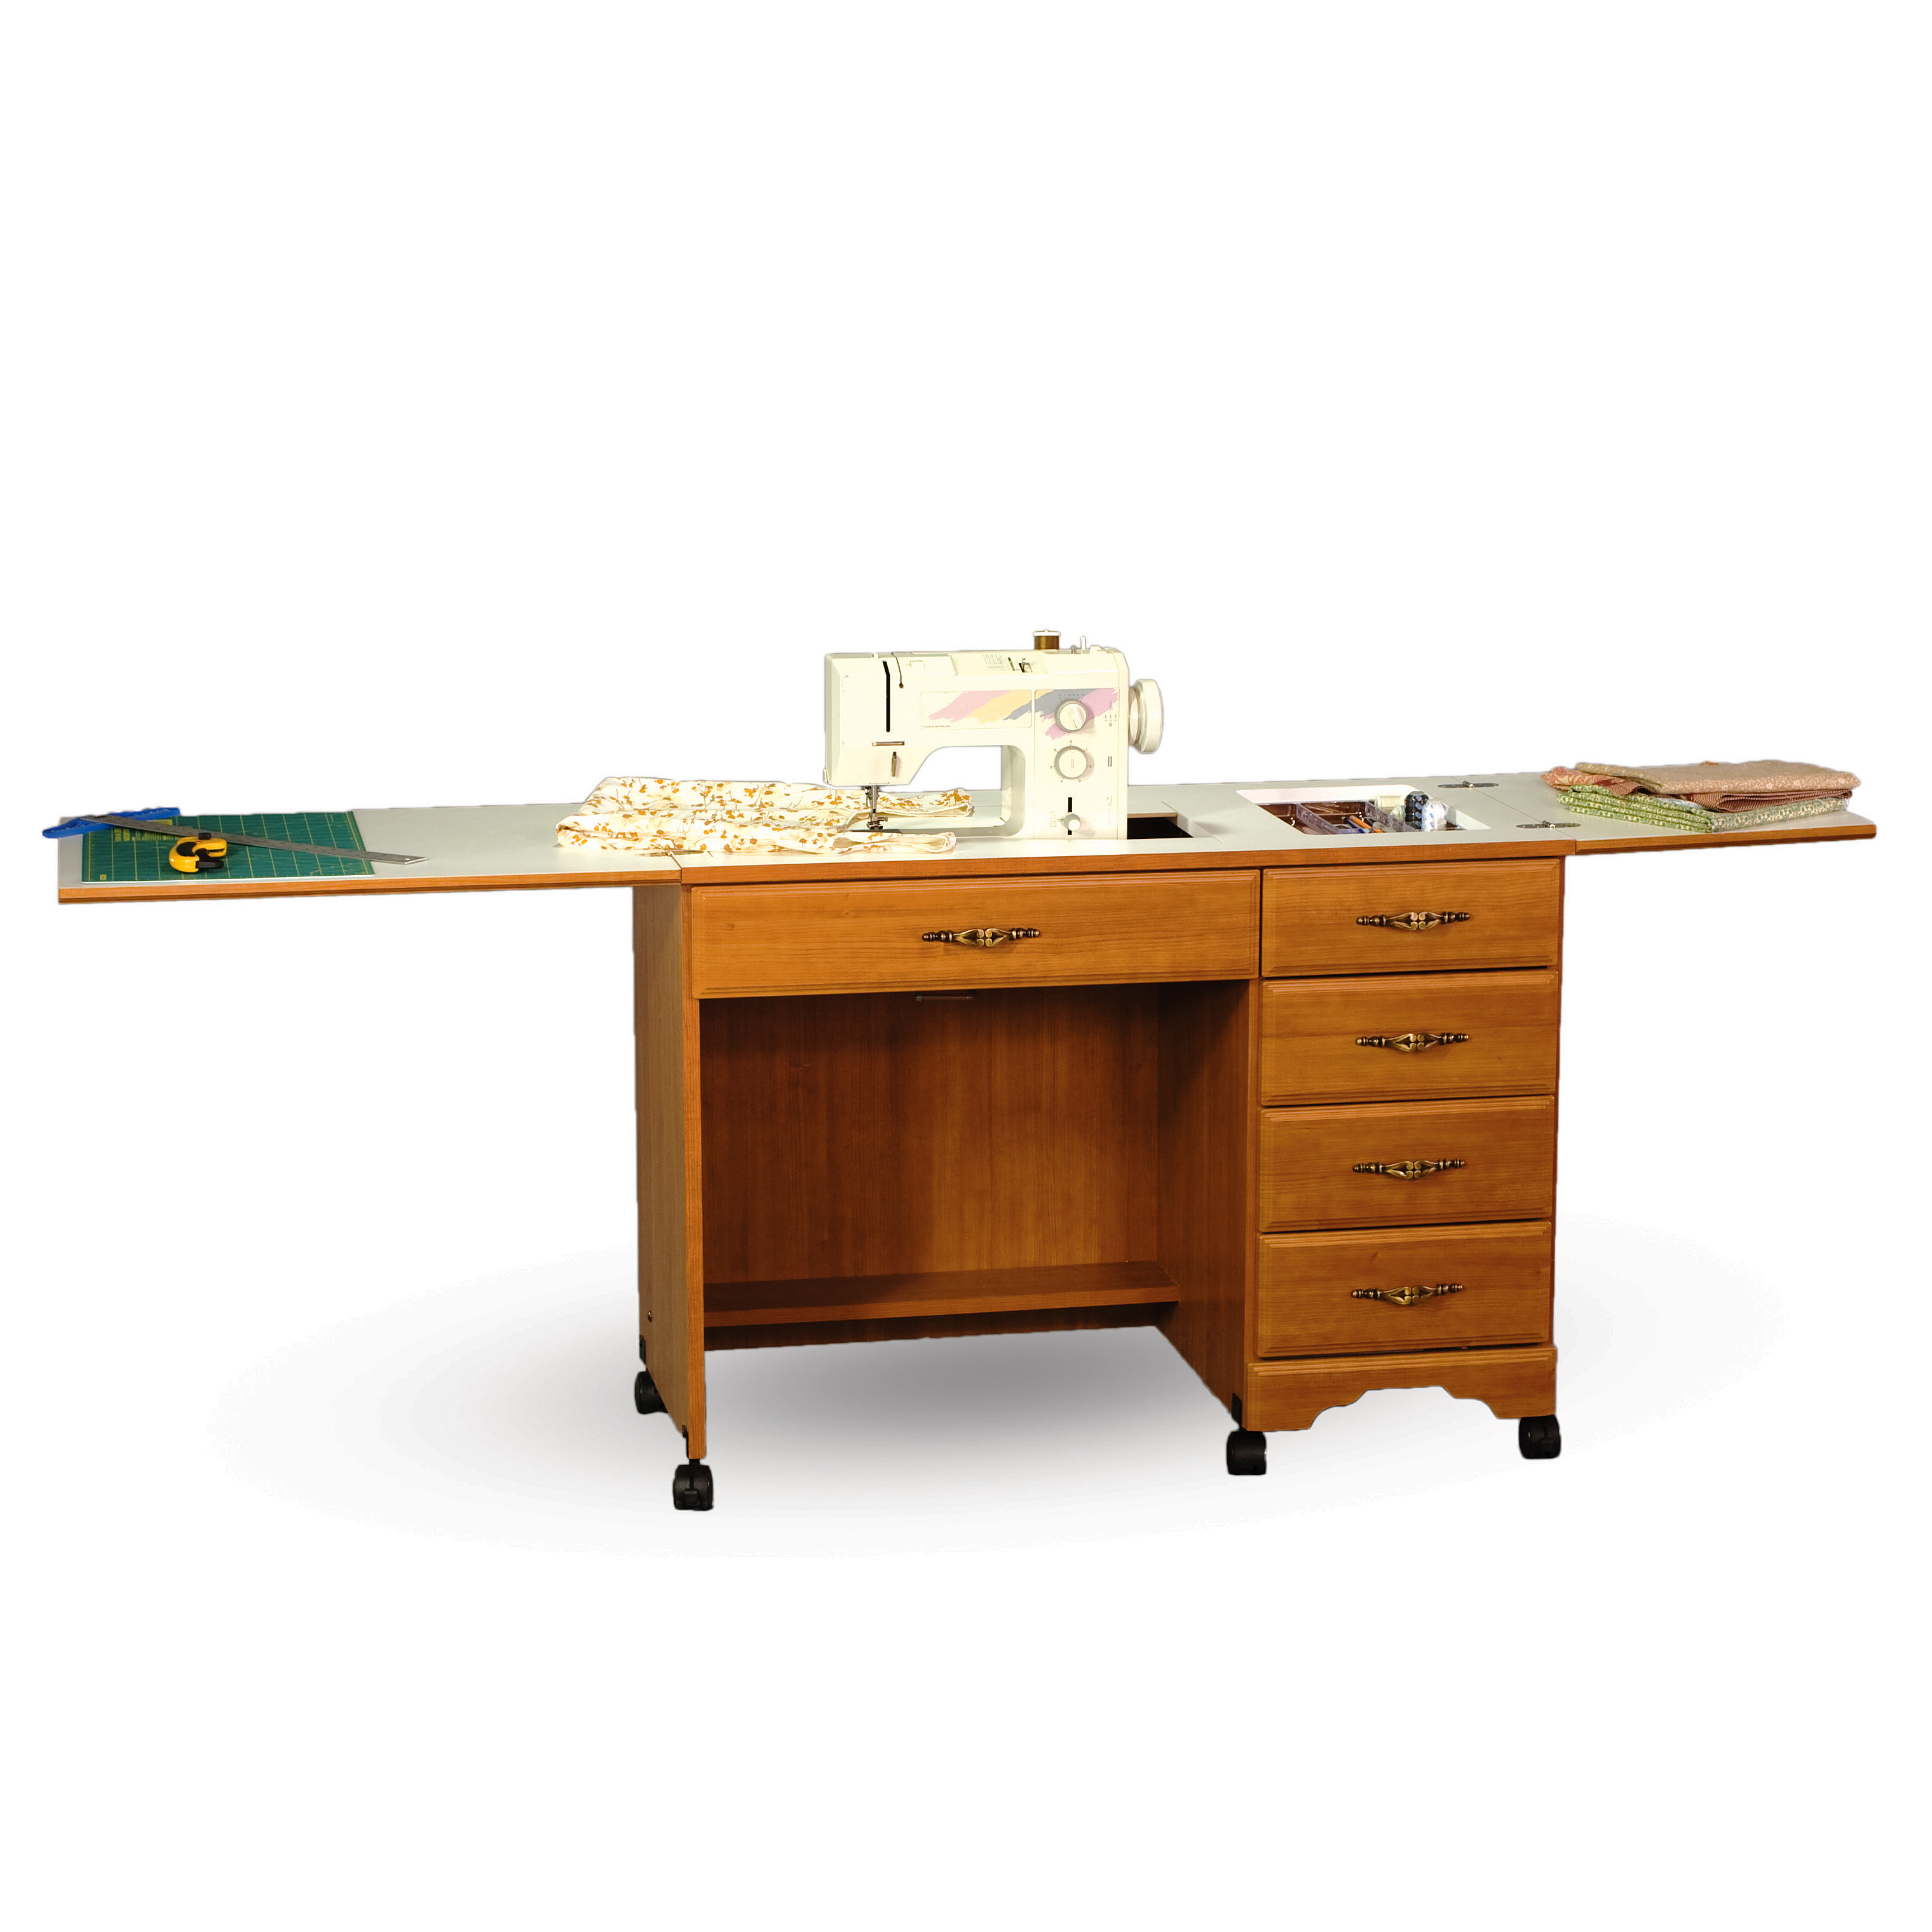 Fashion Sewing Cabinets Of America 3400 Sewing Desk